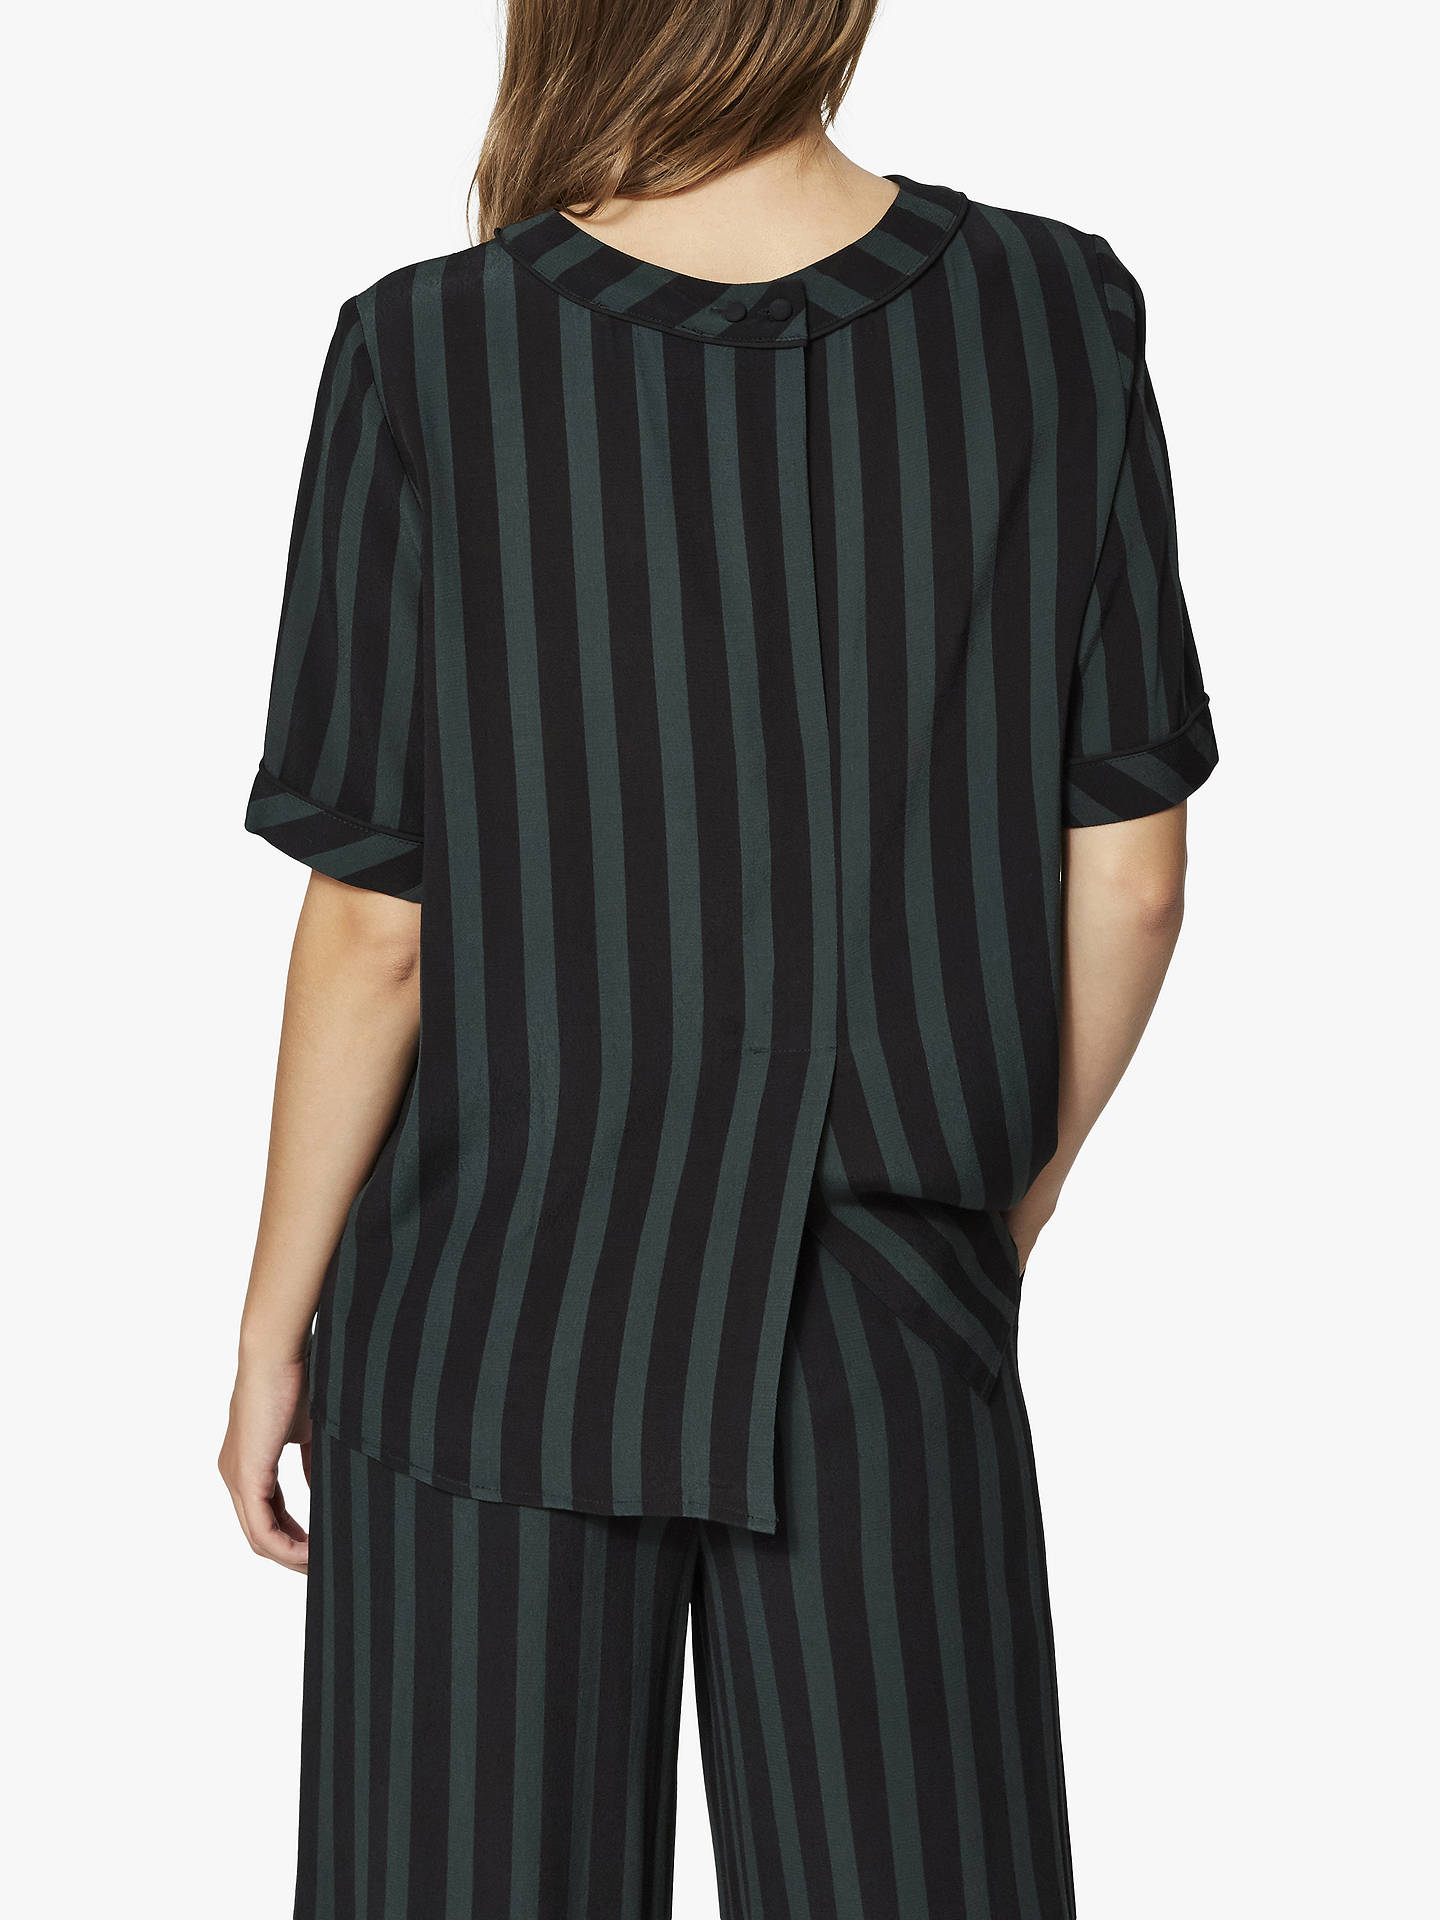 BuySelected Femme Florenta Stripe Top, Black/Green Scarab, 10 Online at johnlewis.com